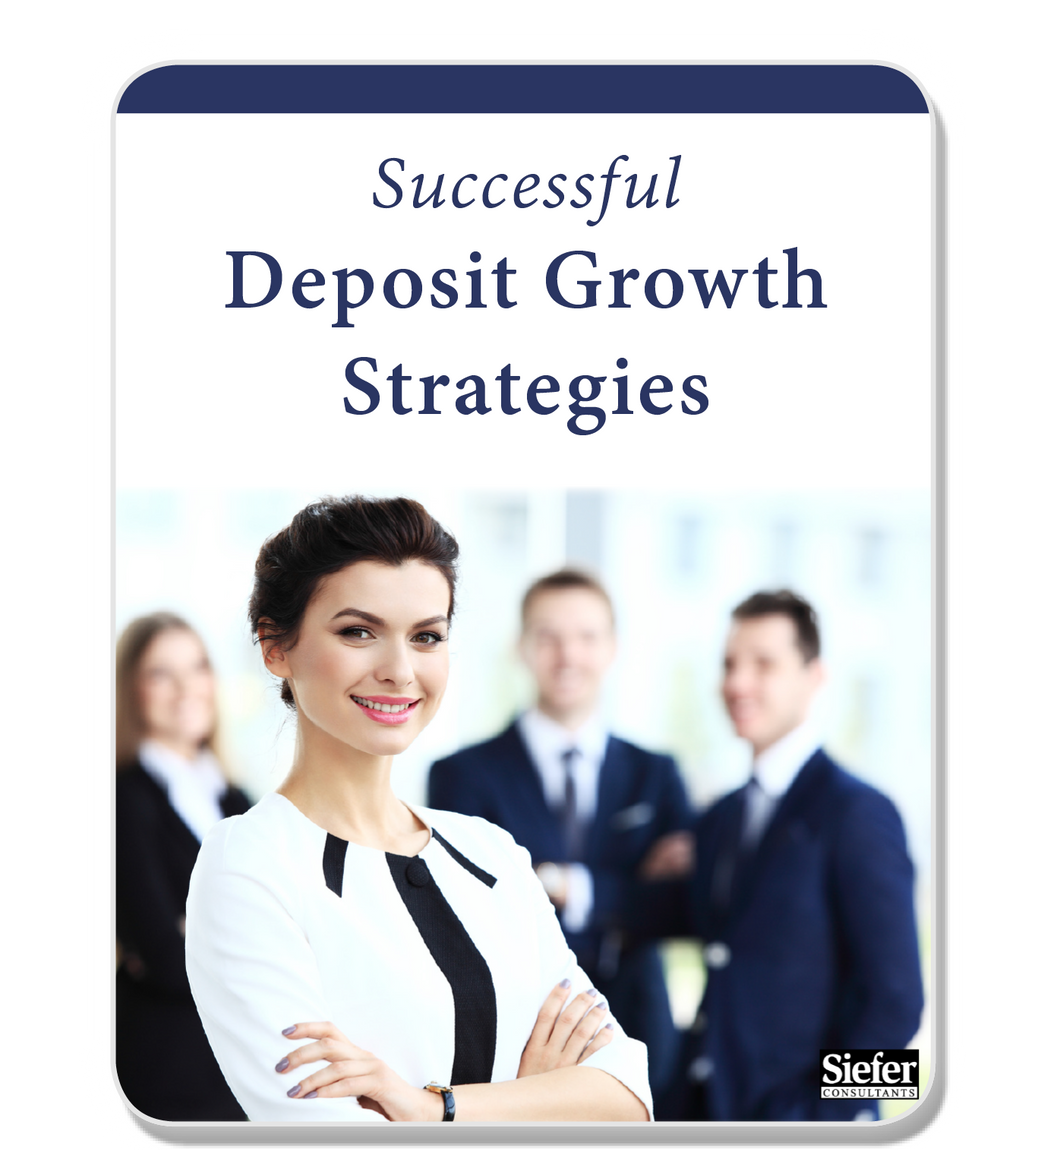 Successful Deposit Growth Strategies